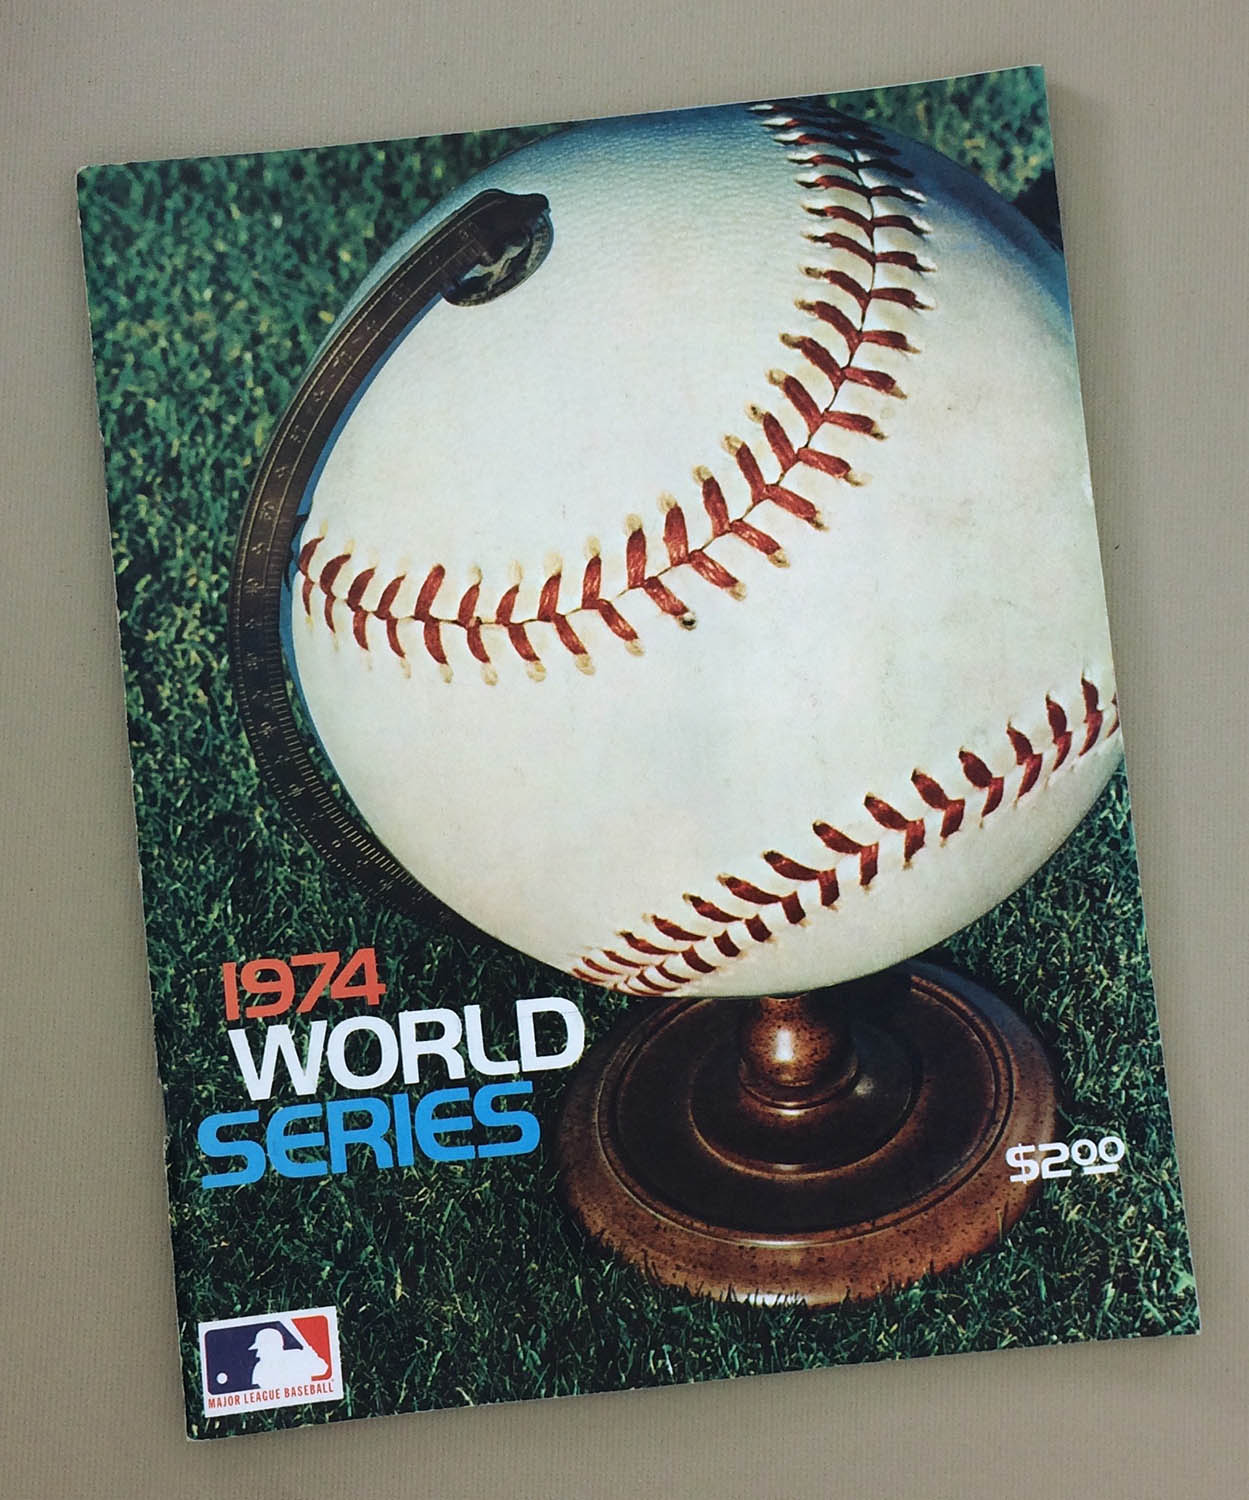 1974 World Series Program